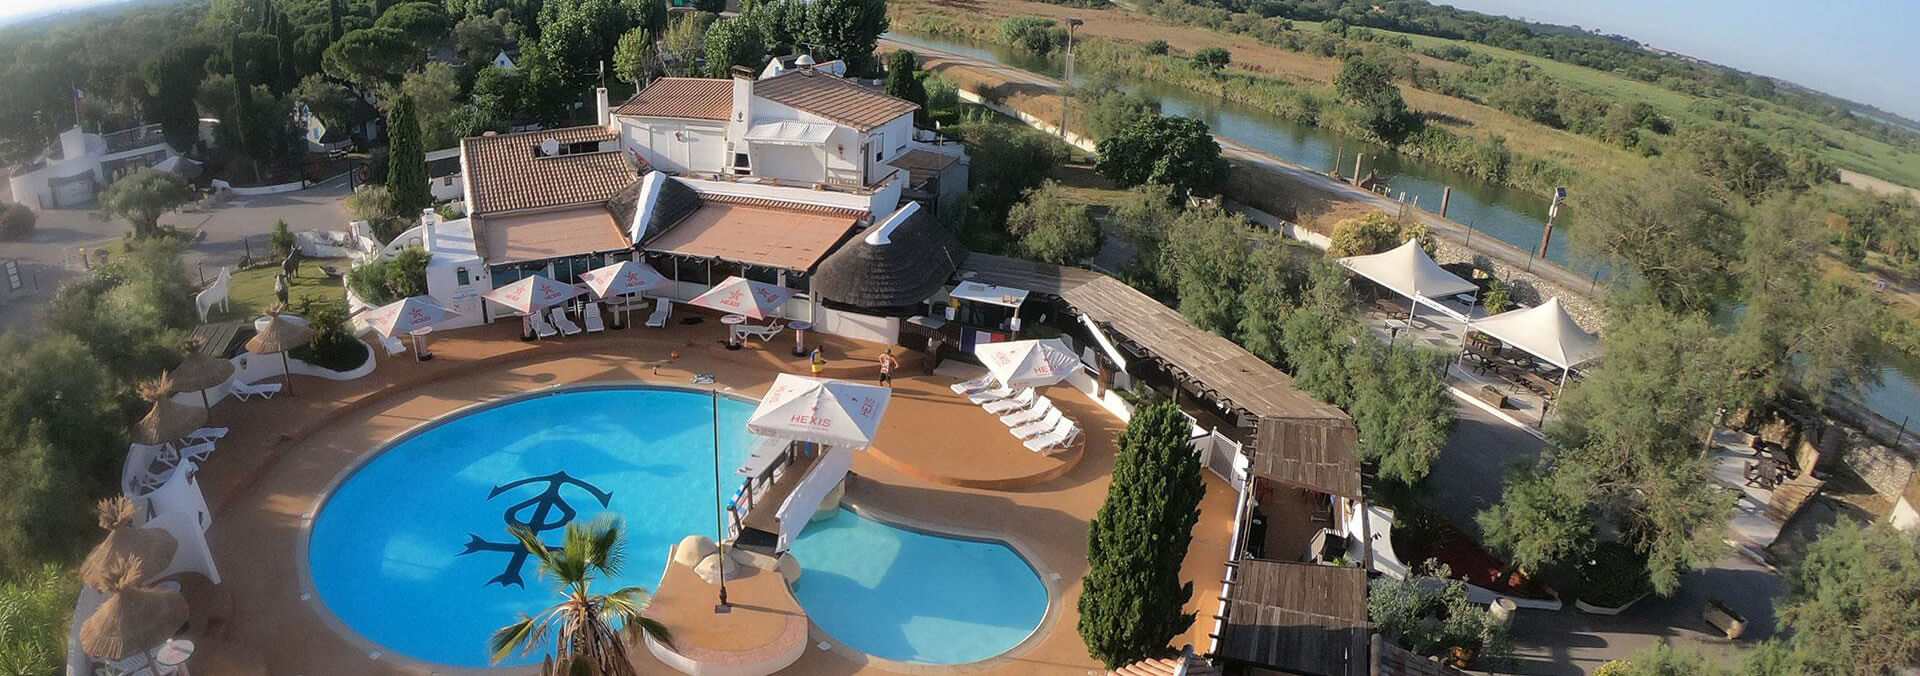 Aerial view of the Camarguais campsite near Montpellier